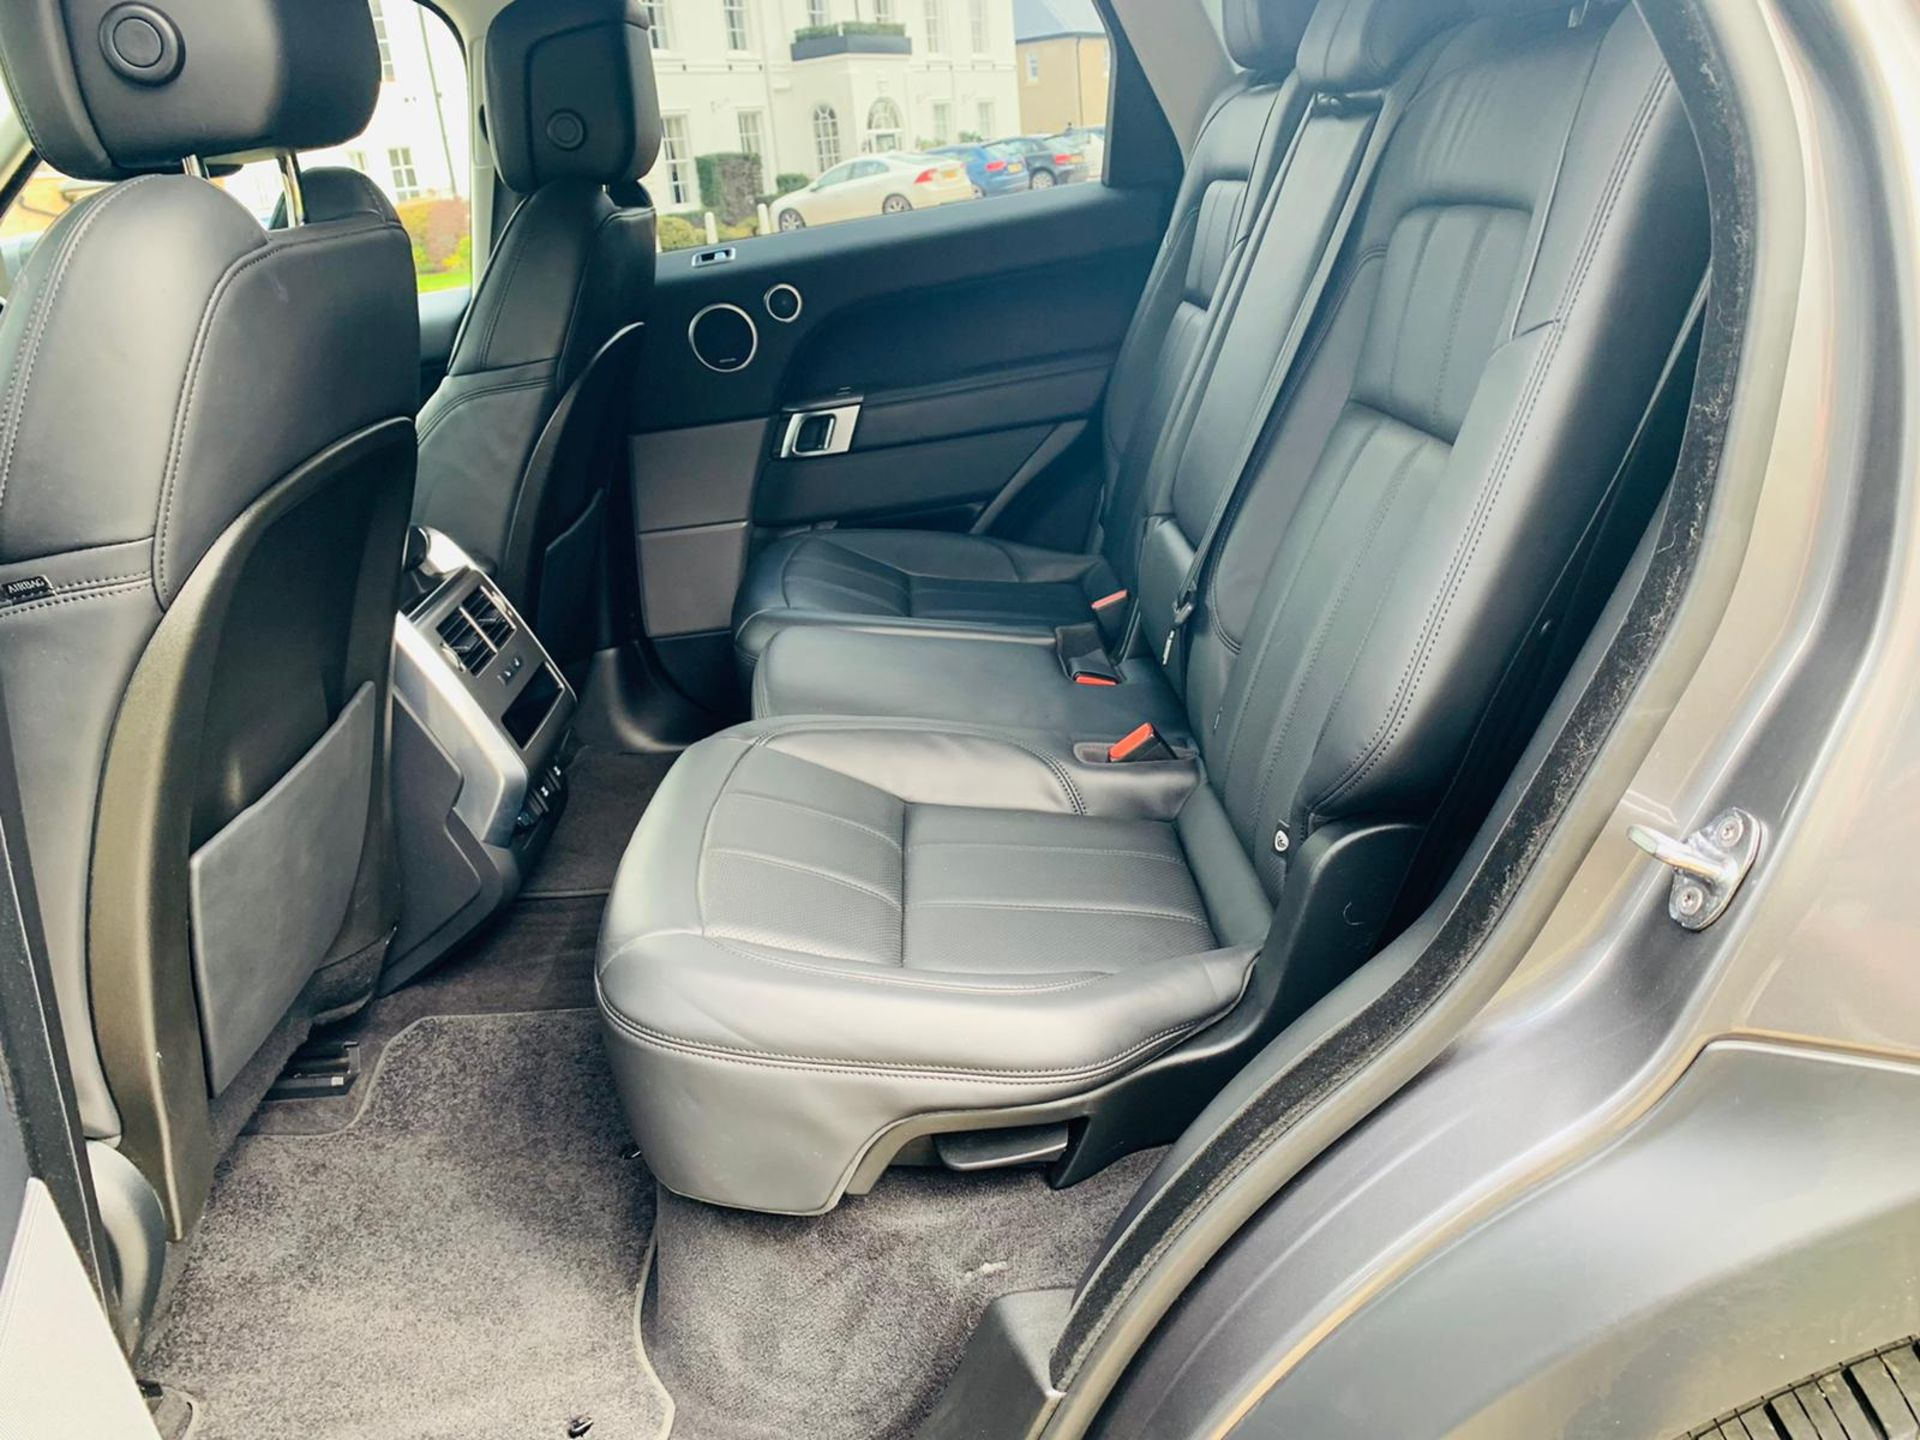 (RESERVE MET) Range Rover Sport 3.0 SDV6 HSE Auto - 2019 - 1 Keeper From New - Virtual Cockpit - - Image 27 of 42